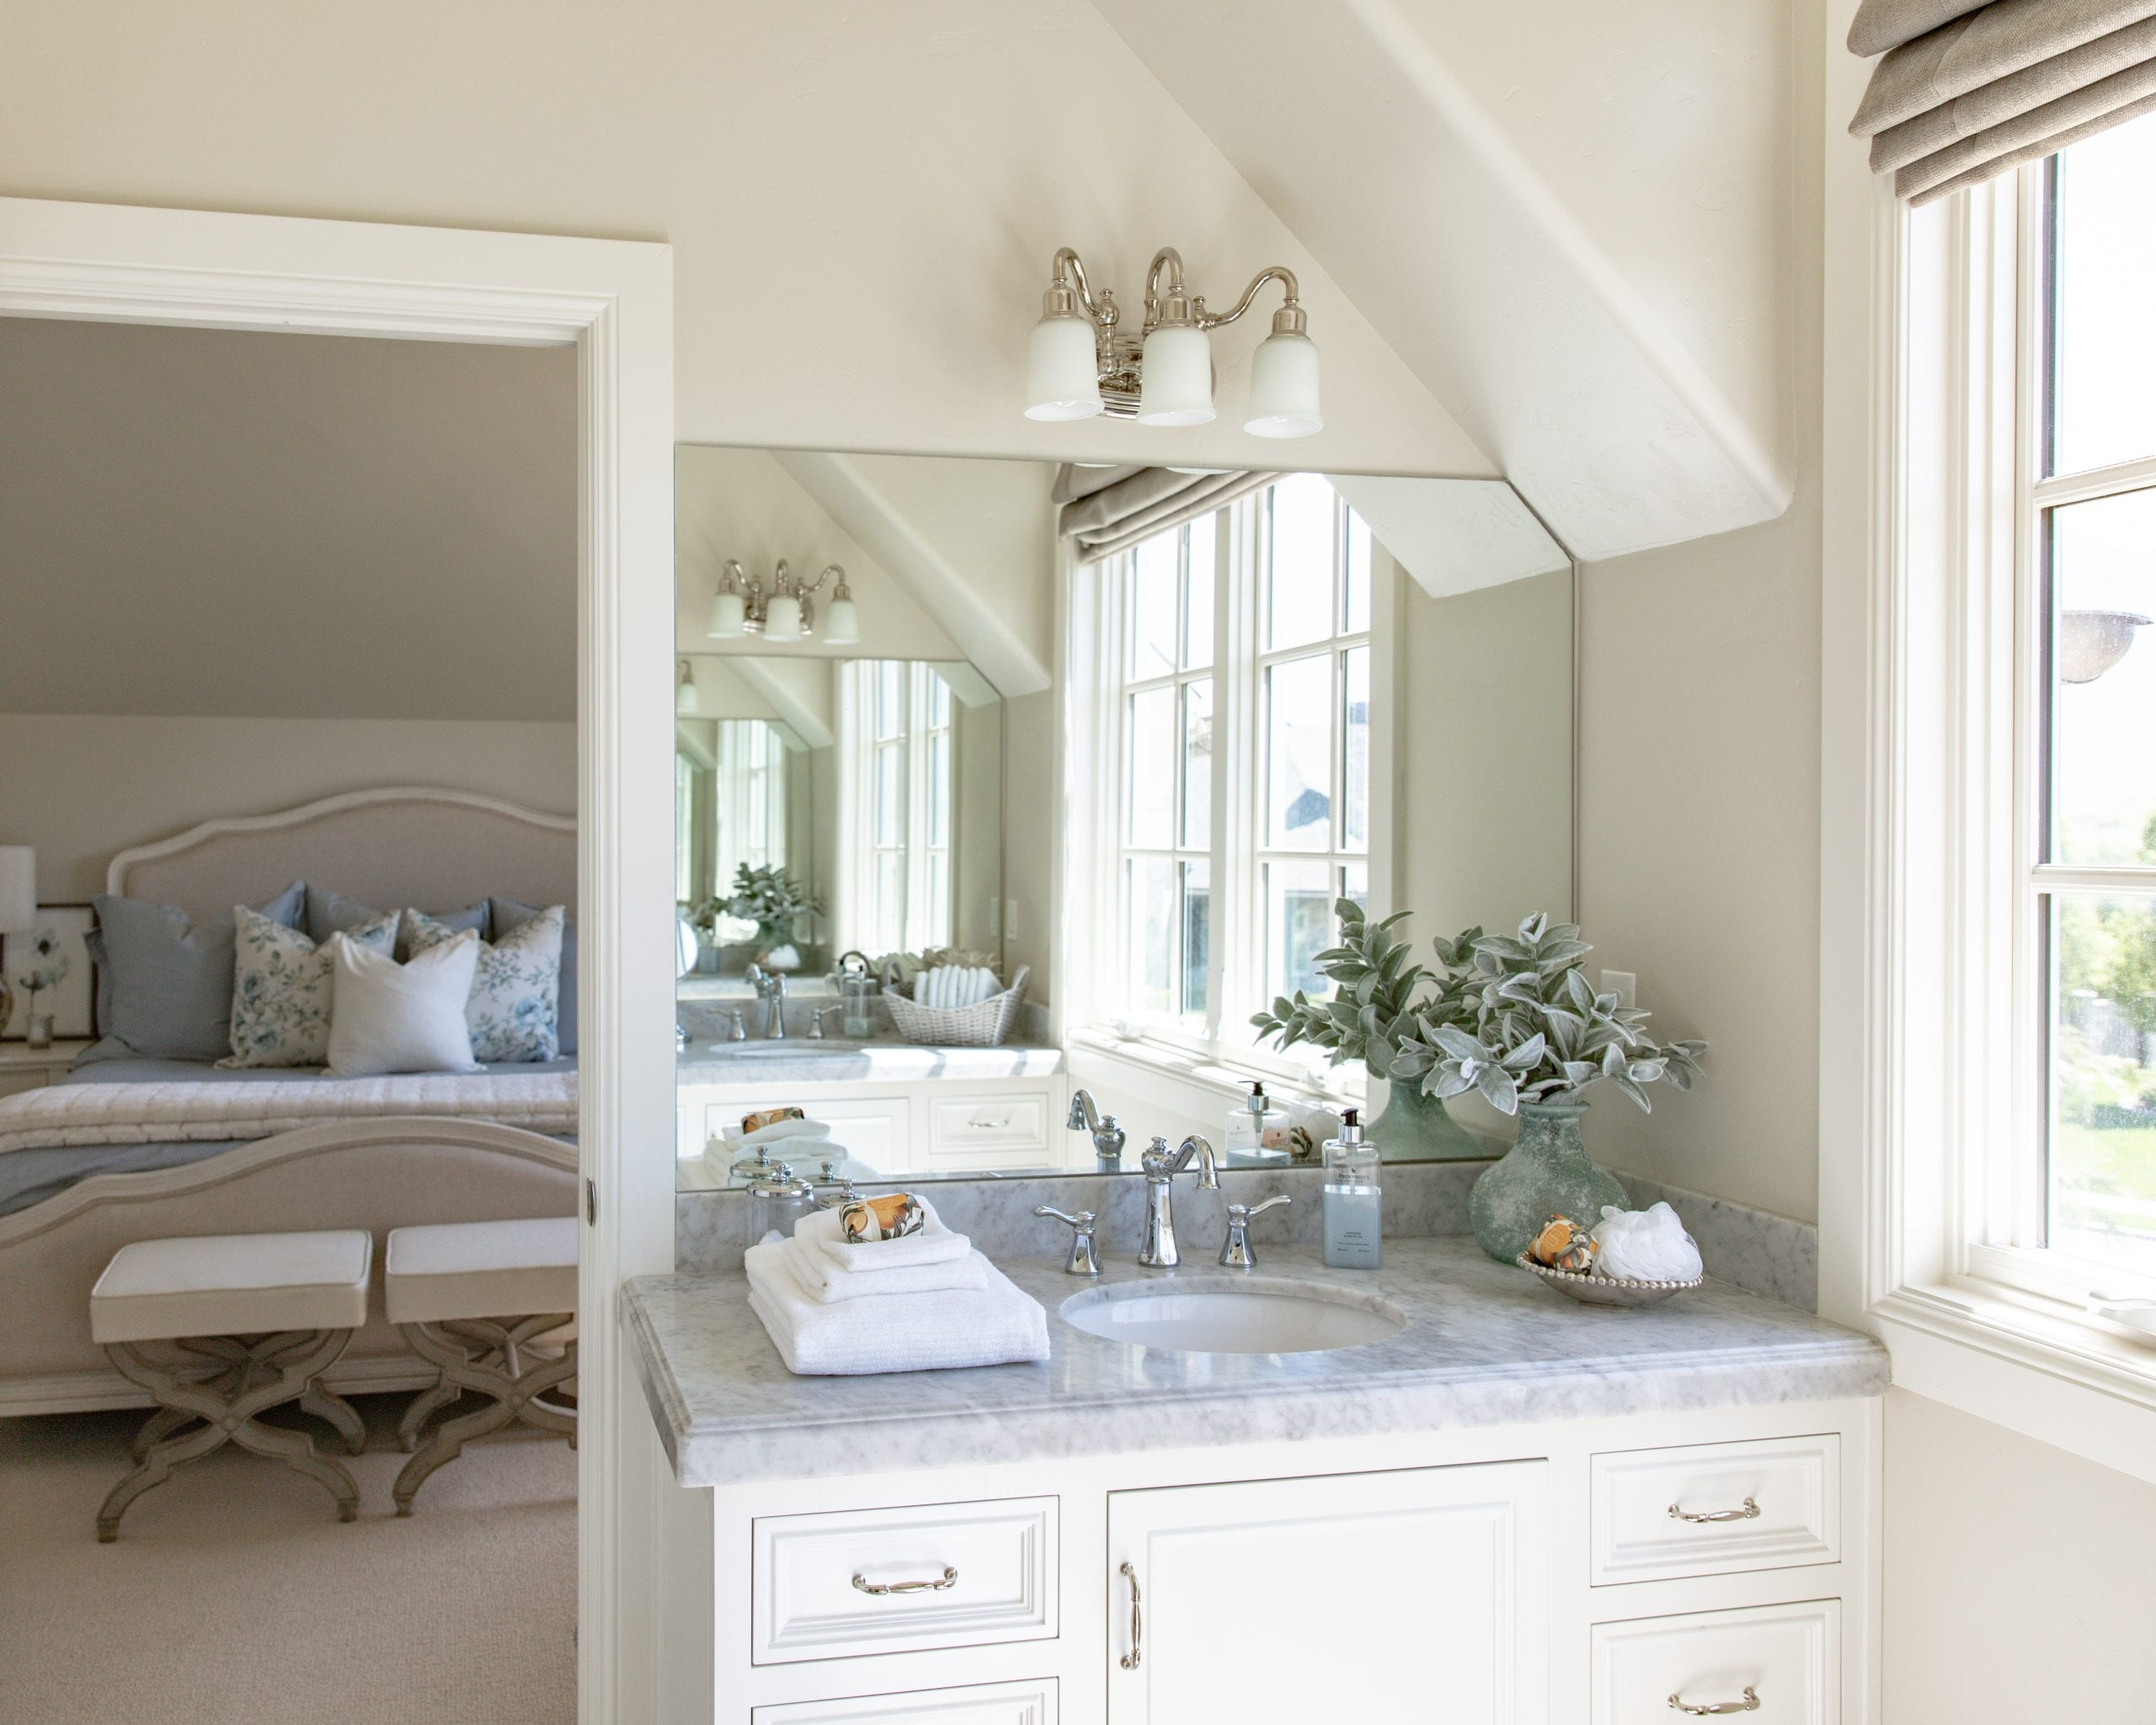 bathroom guest | How To Prepare Your Home For Guests | Home With Holly J